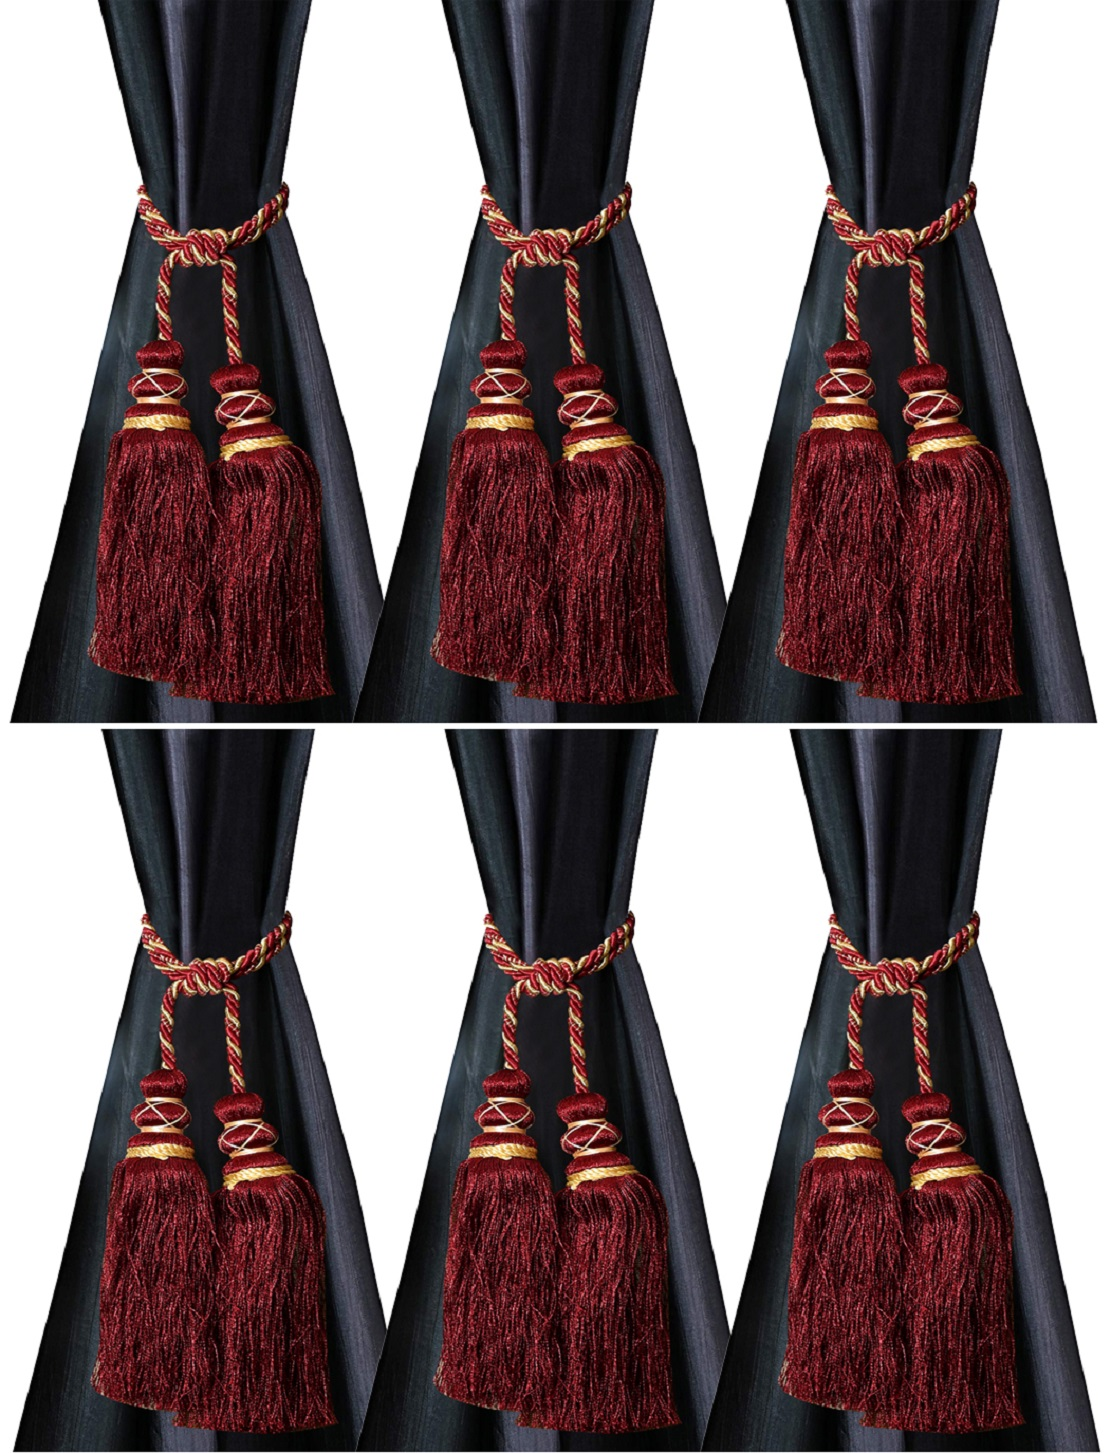 Kuber Industries Polyester 6 Pieces Curtain Tie Back Tassel Set (Maroon)